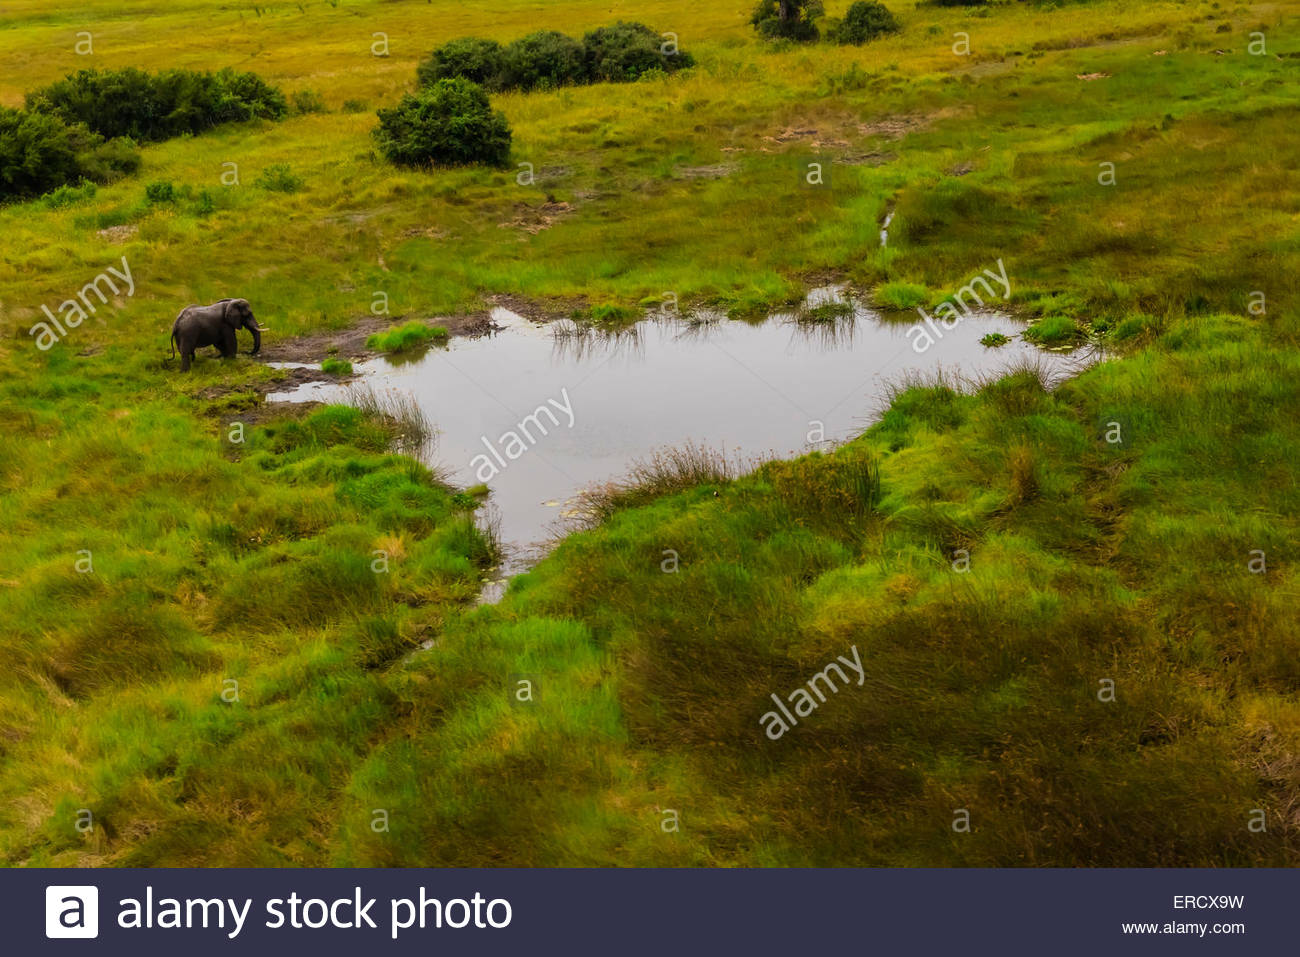 Aerial view of an African elephant at a watering hole, Okavango Delta, Botswana. - Stock Image